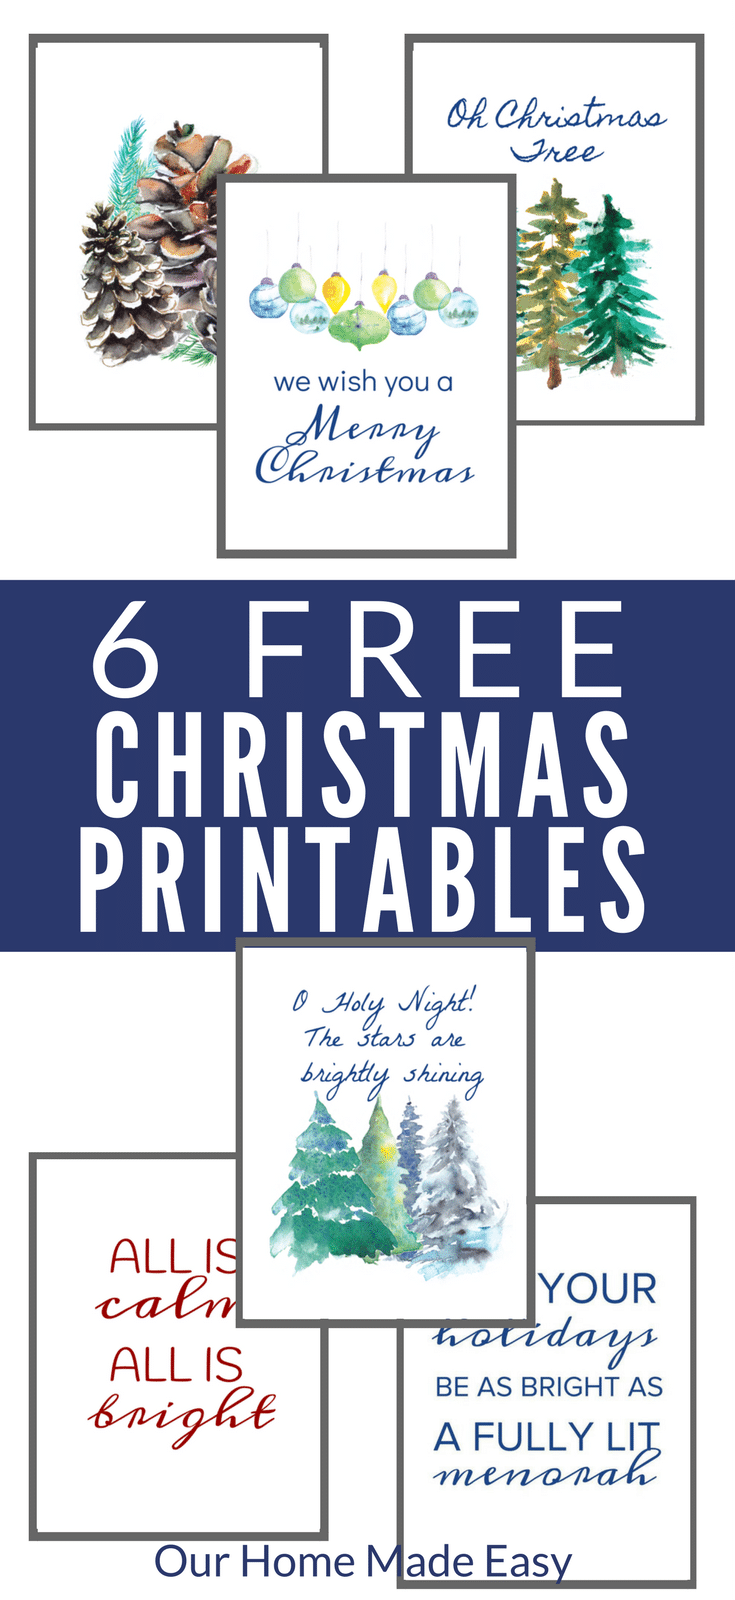 Here are 6 free Christmas printables for any last minute Christmas decorating! They are super cute. Print and hang!